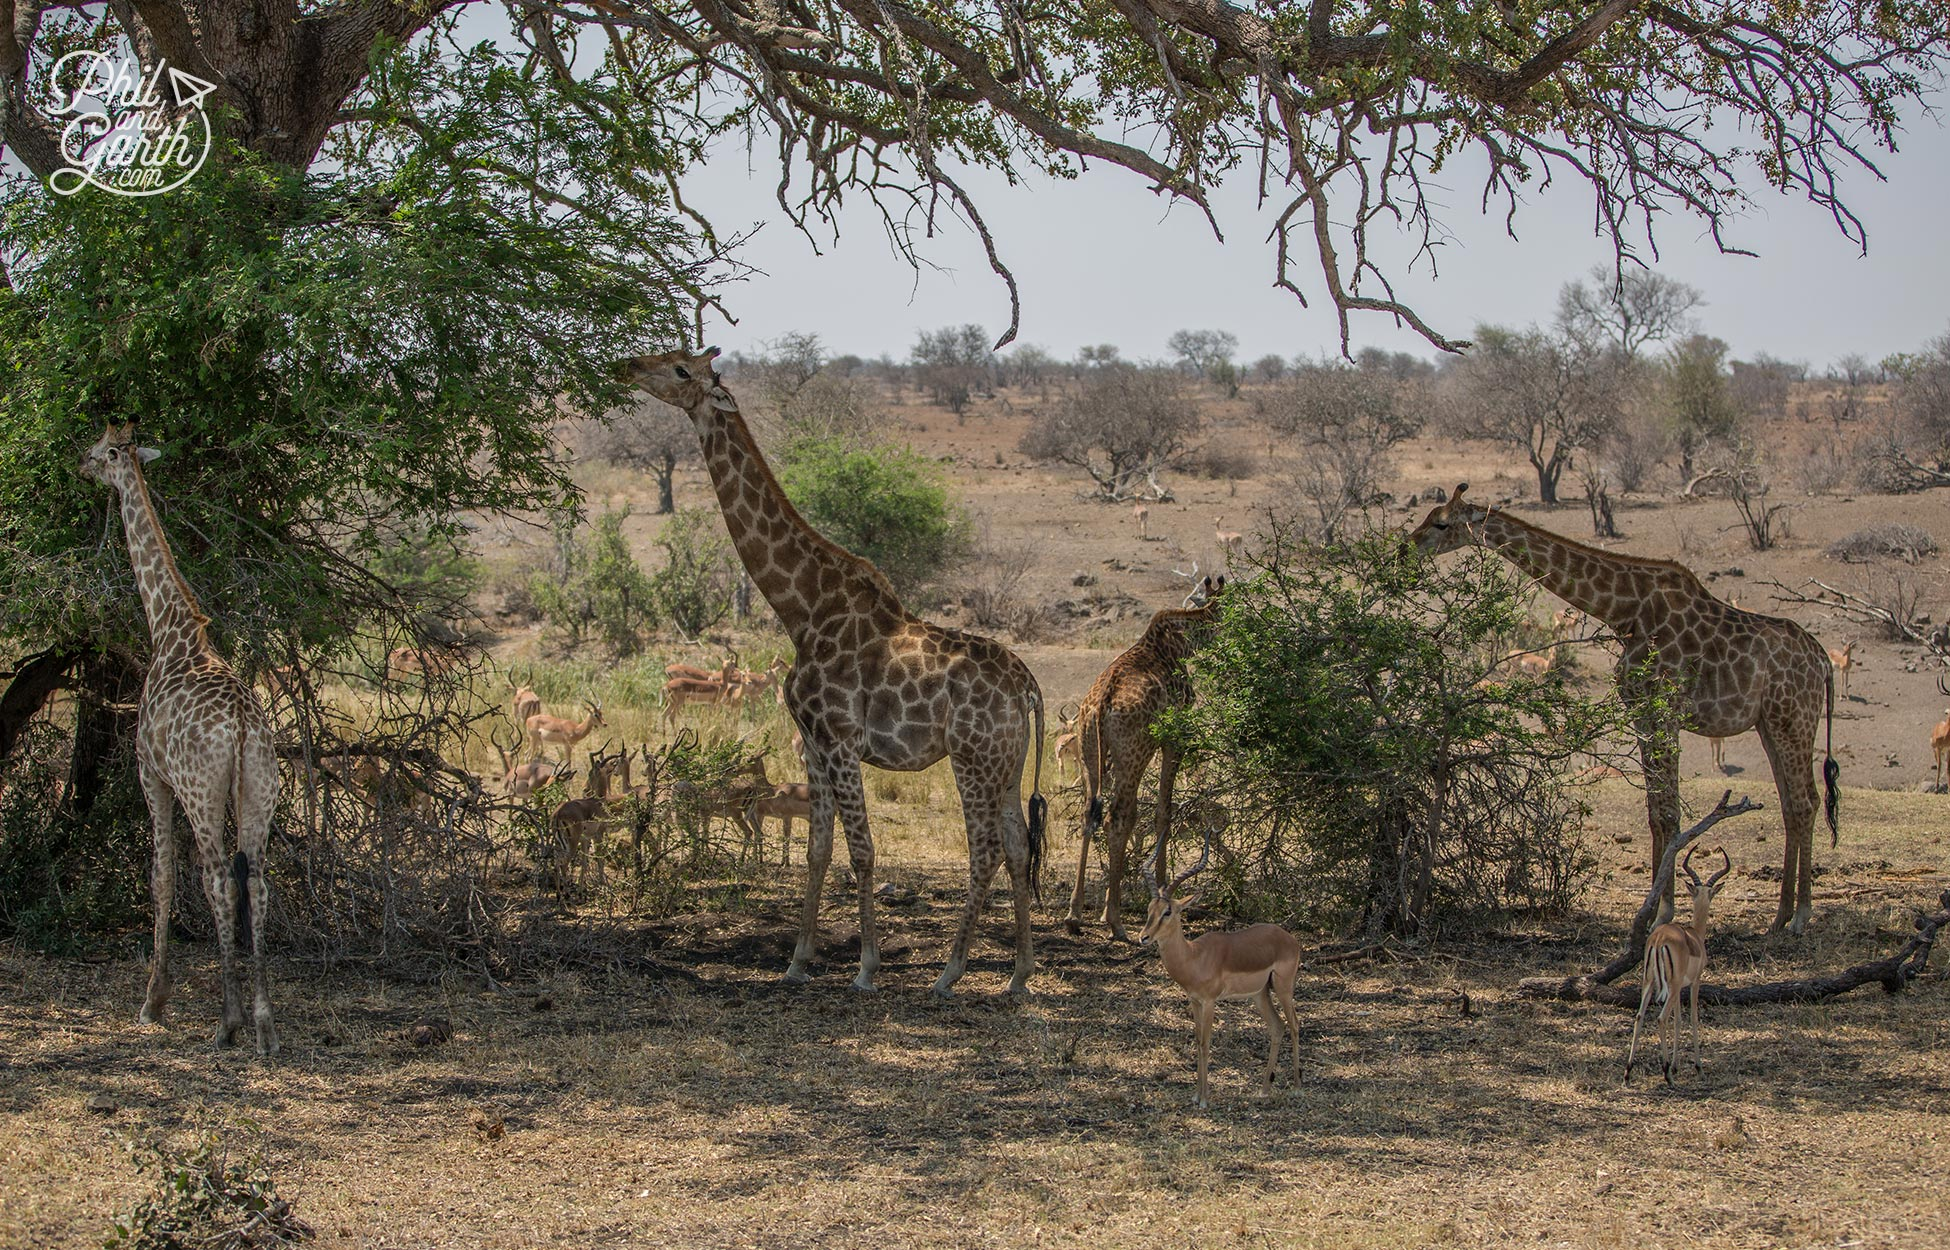 Giraffes huddle under the shade of a tree